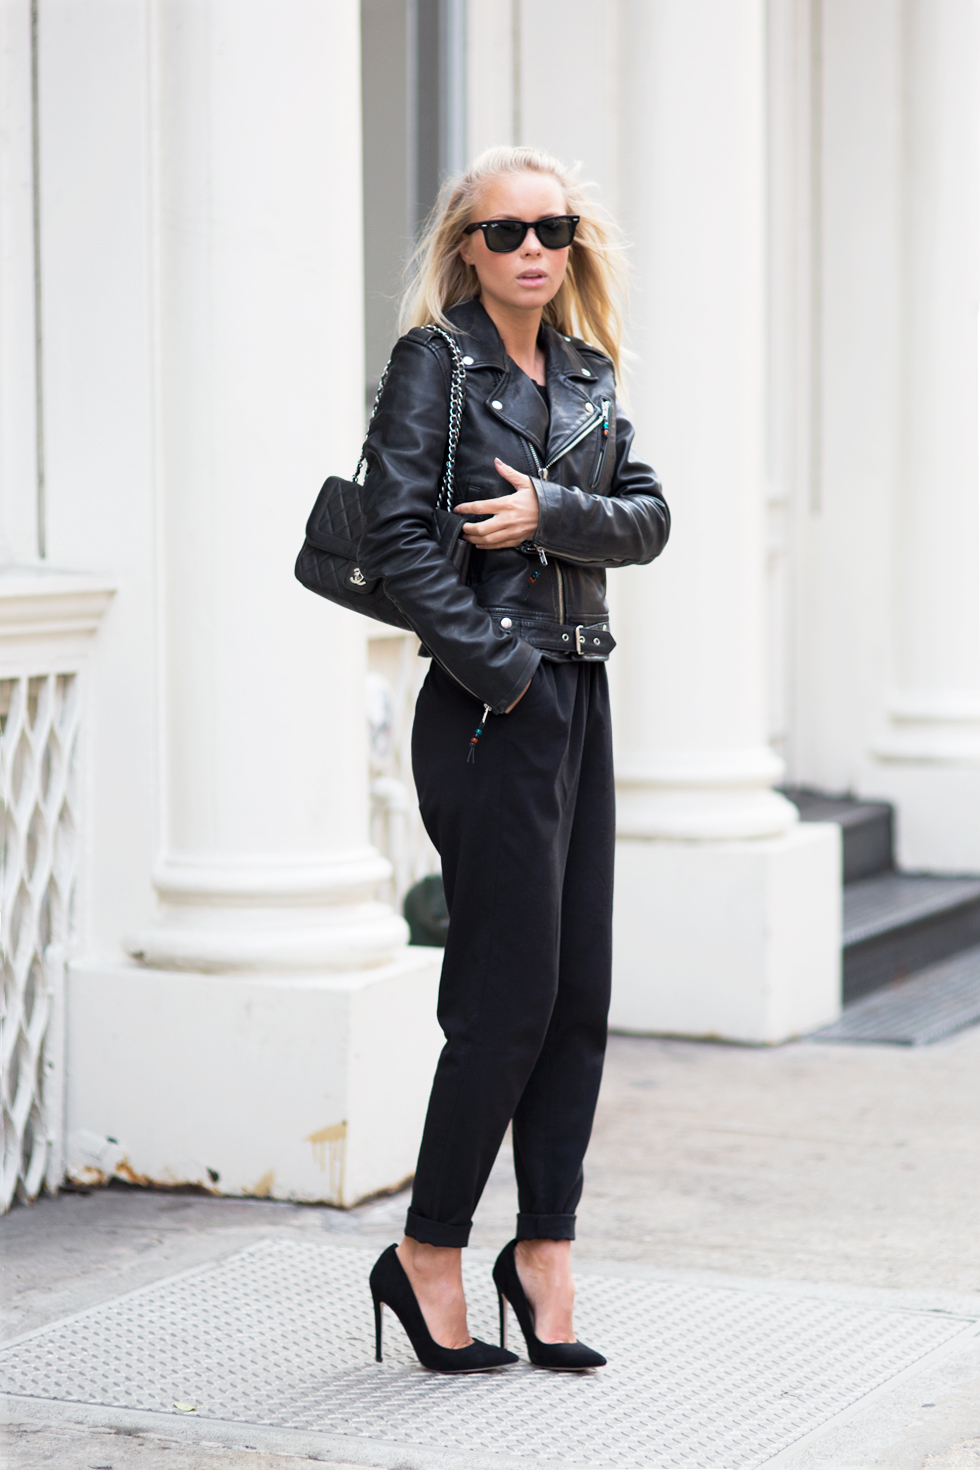 Victoria Tornegren is wearing all black, shoes from Asos, trousers from H&M, Jacket from BLK Denim and the bag is from Chanel